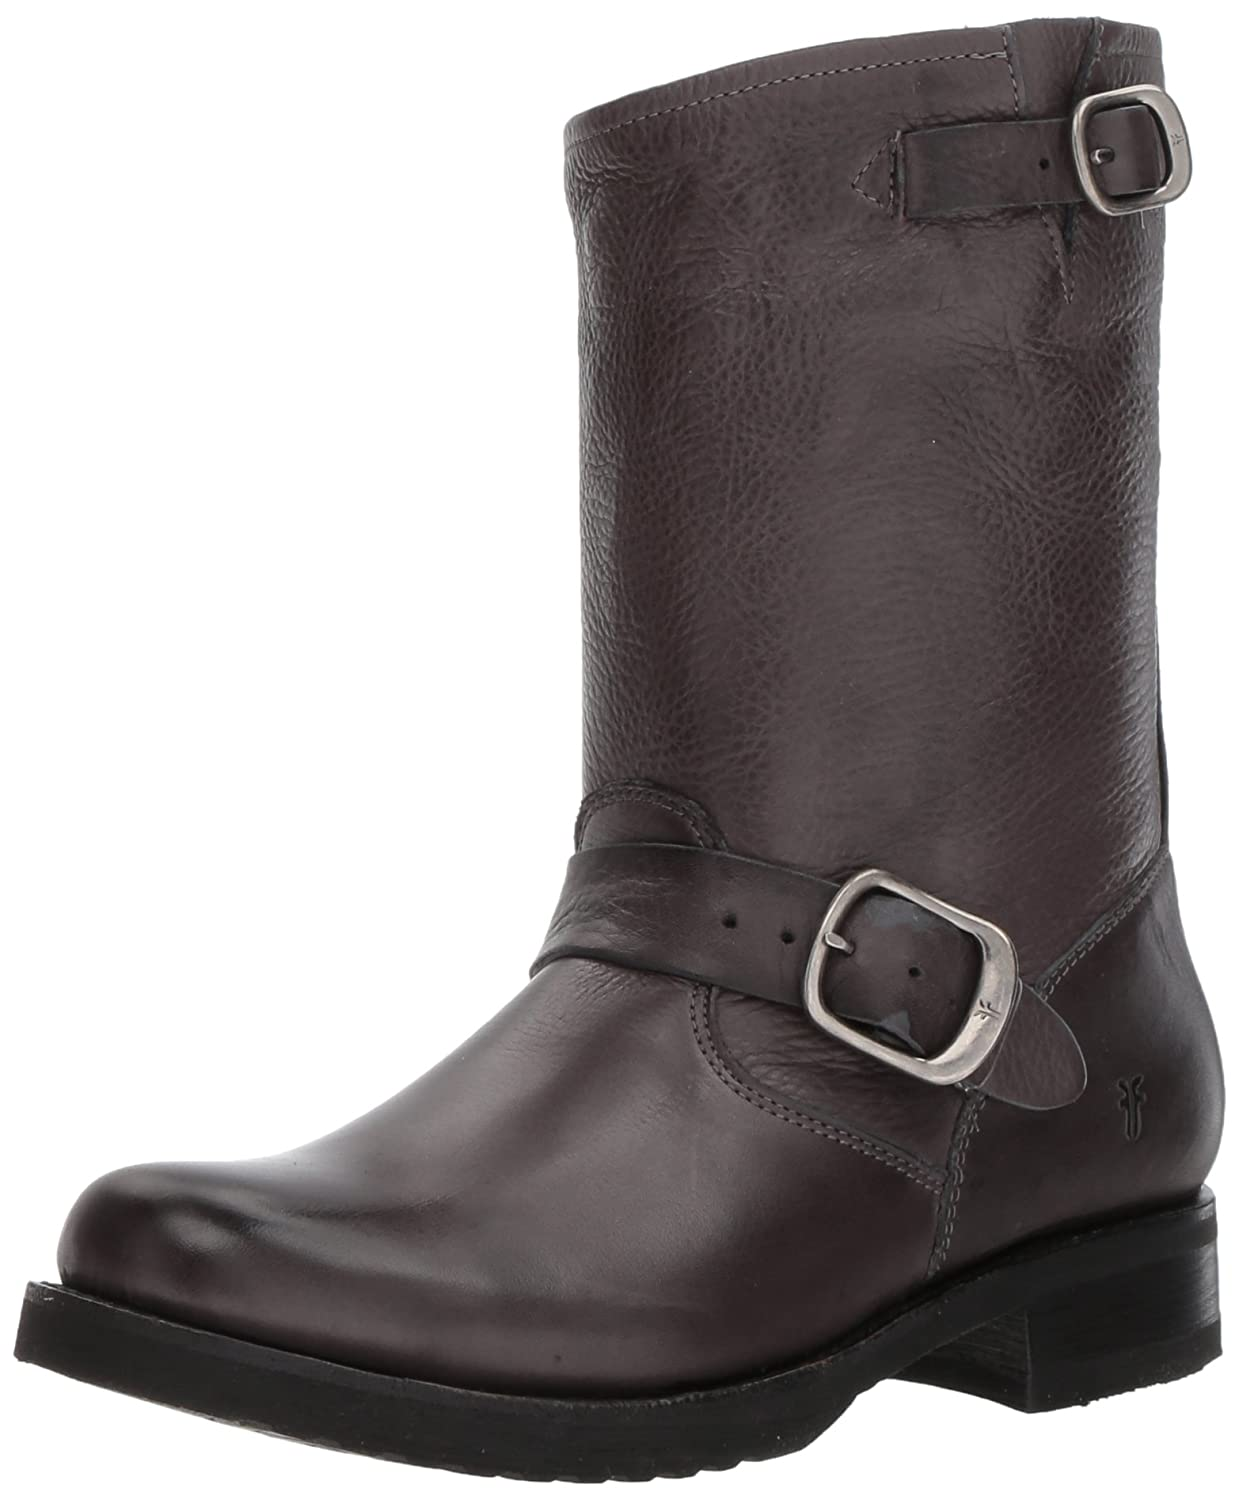 FRYE Women's Veronica Short 2 Boot B06XHSVTRZ 8.5 M US|Smoke